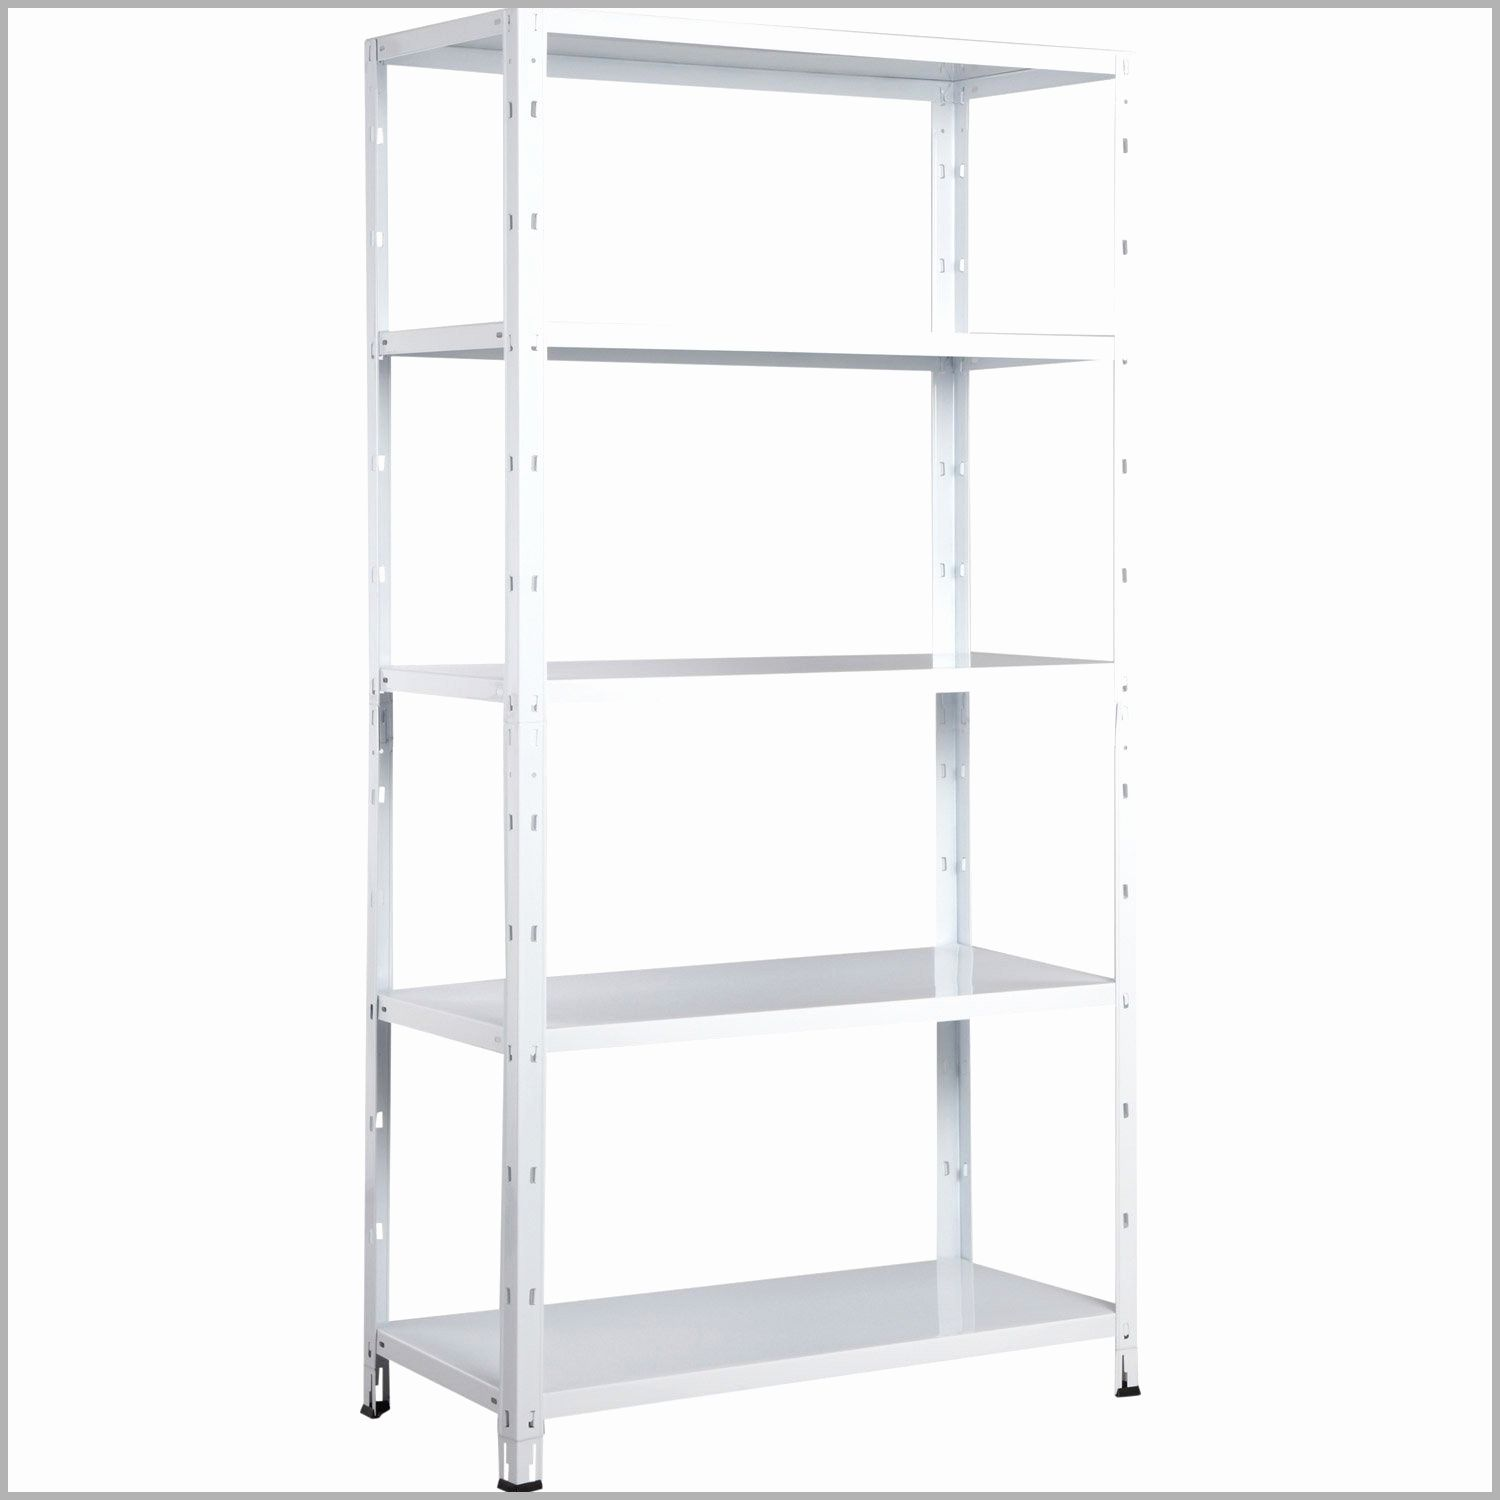 Armoire Plastique Brico Depot Armoire Plastique Brico Depot Armoire Basse Resine H 97 X L 65 X P 45 Cm Brico Depot Steel Shelving Steel Shelving Unit Shelves